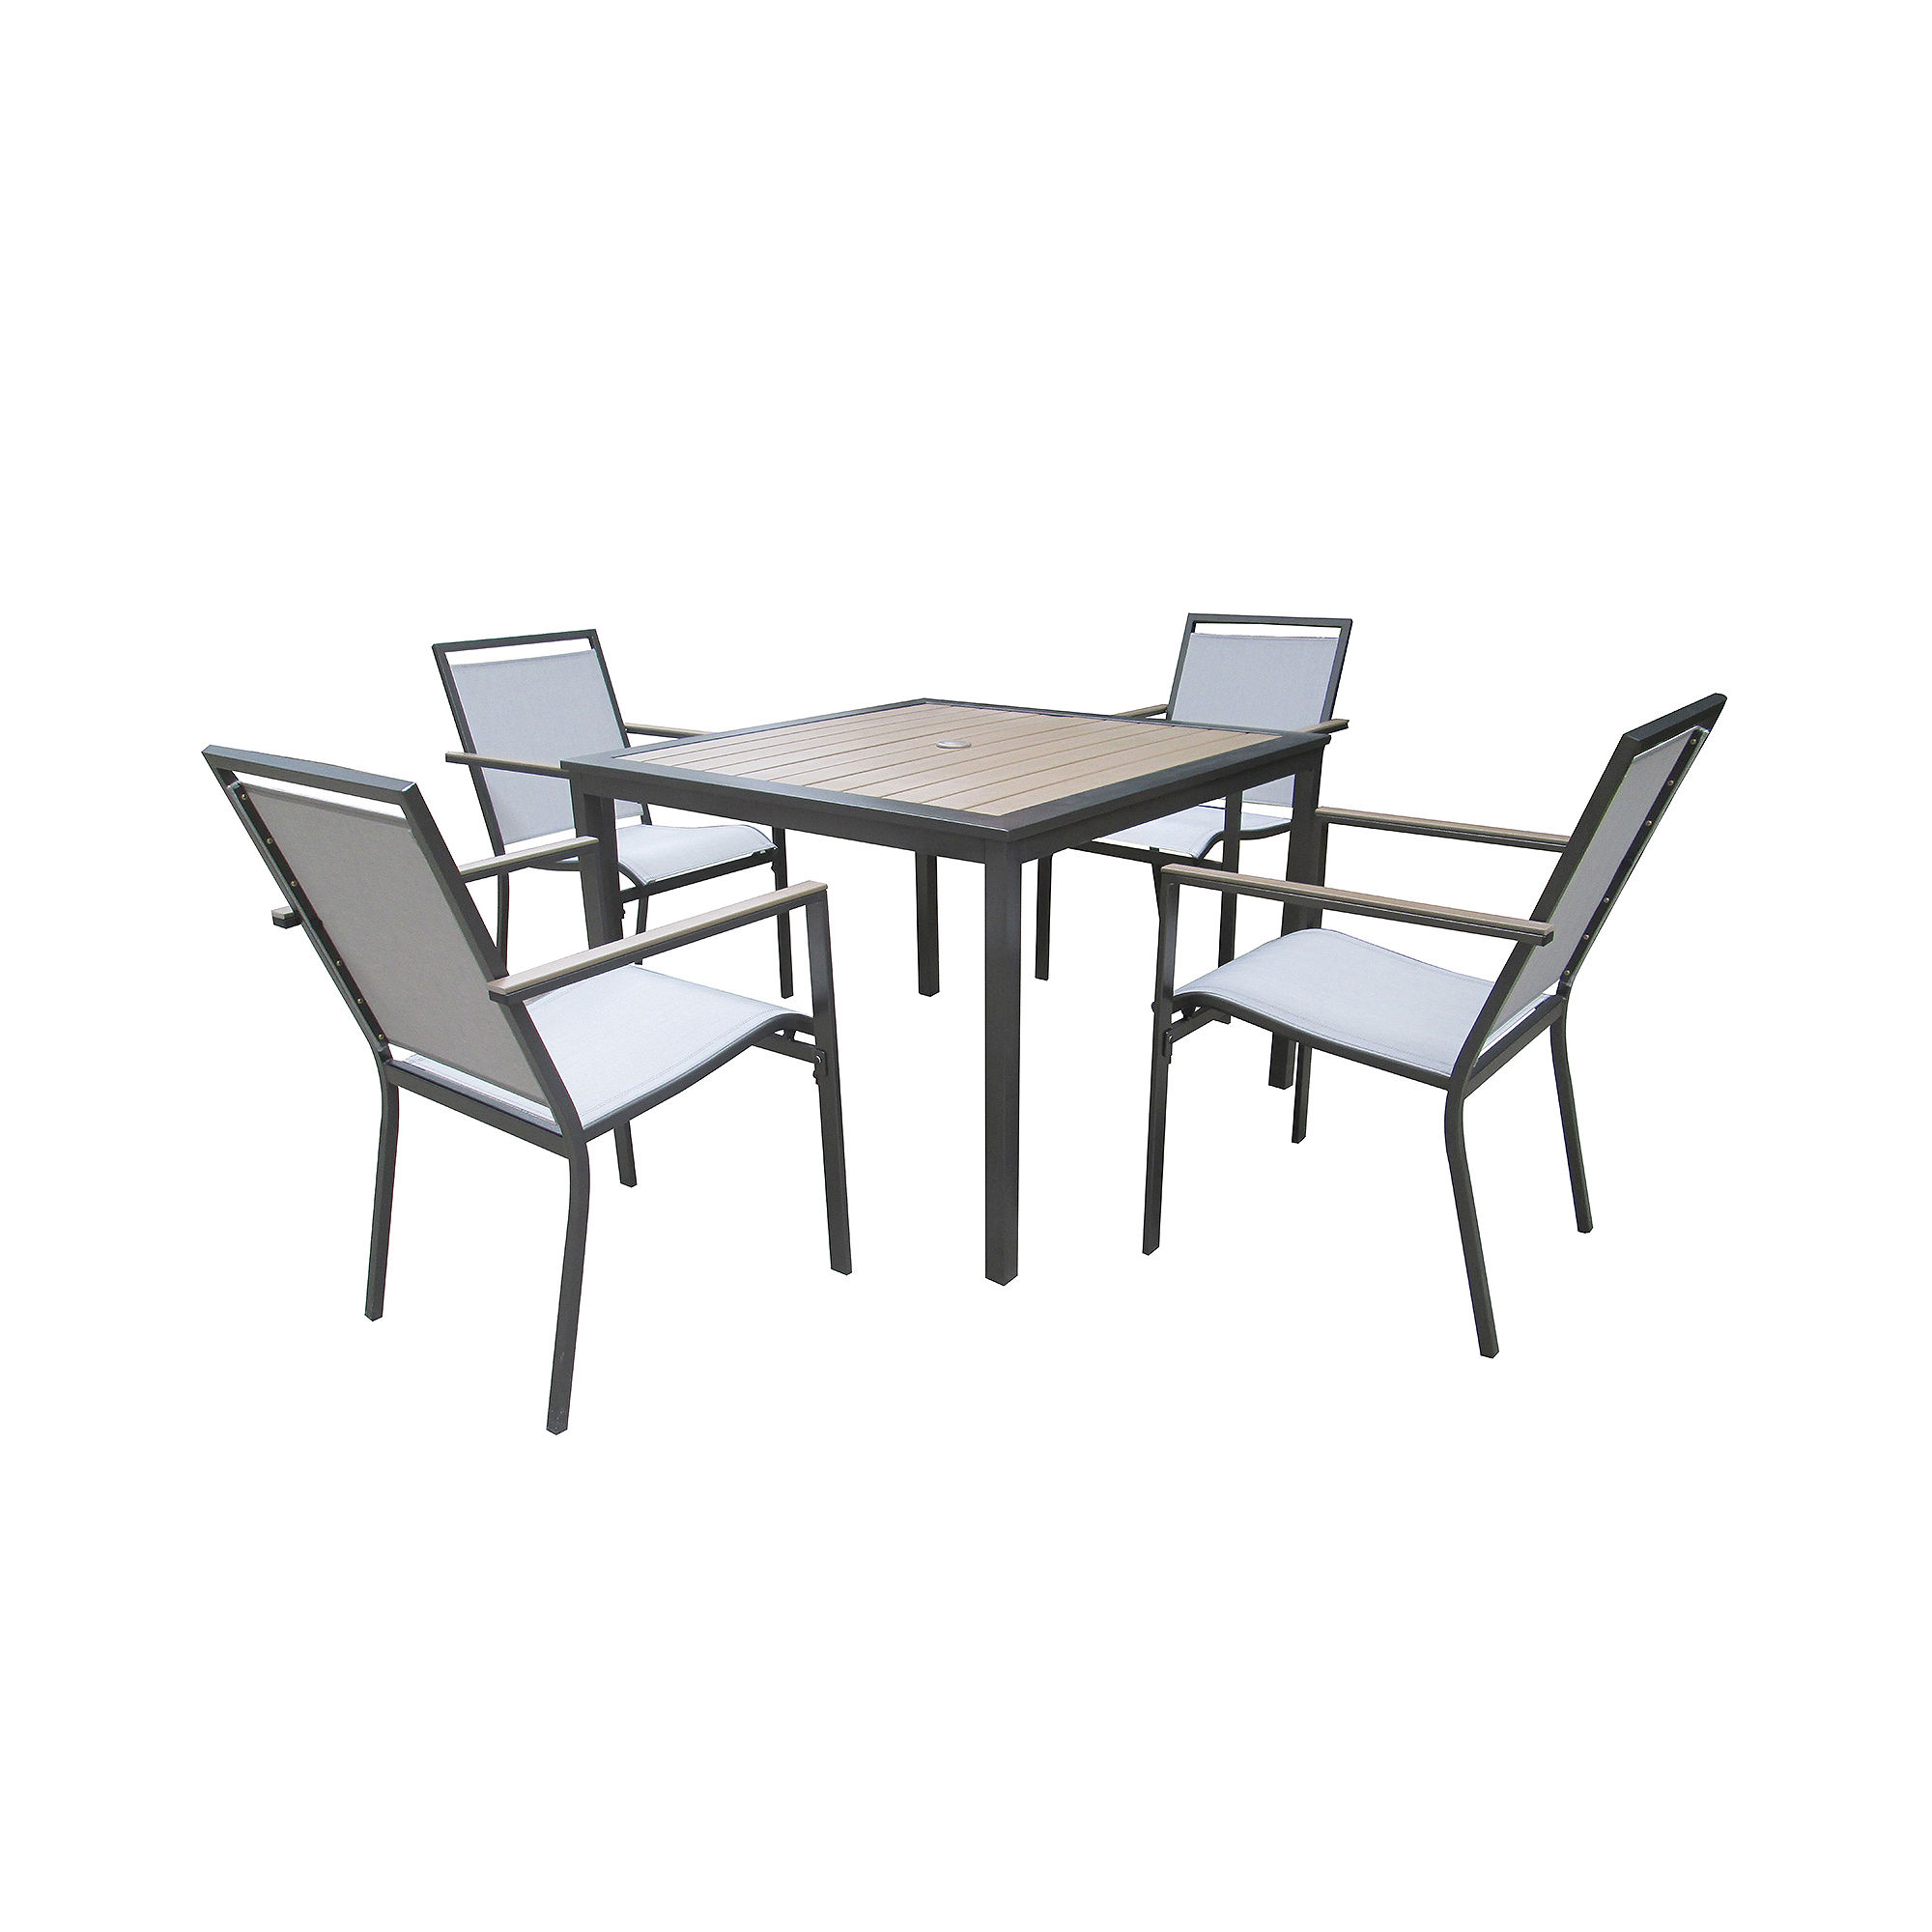 need review of jcpenney outdoor furniture i highly recommend outdoor